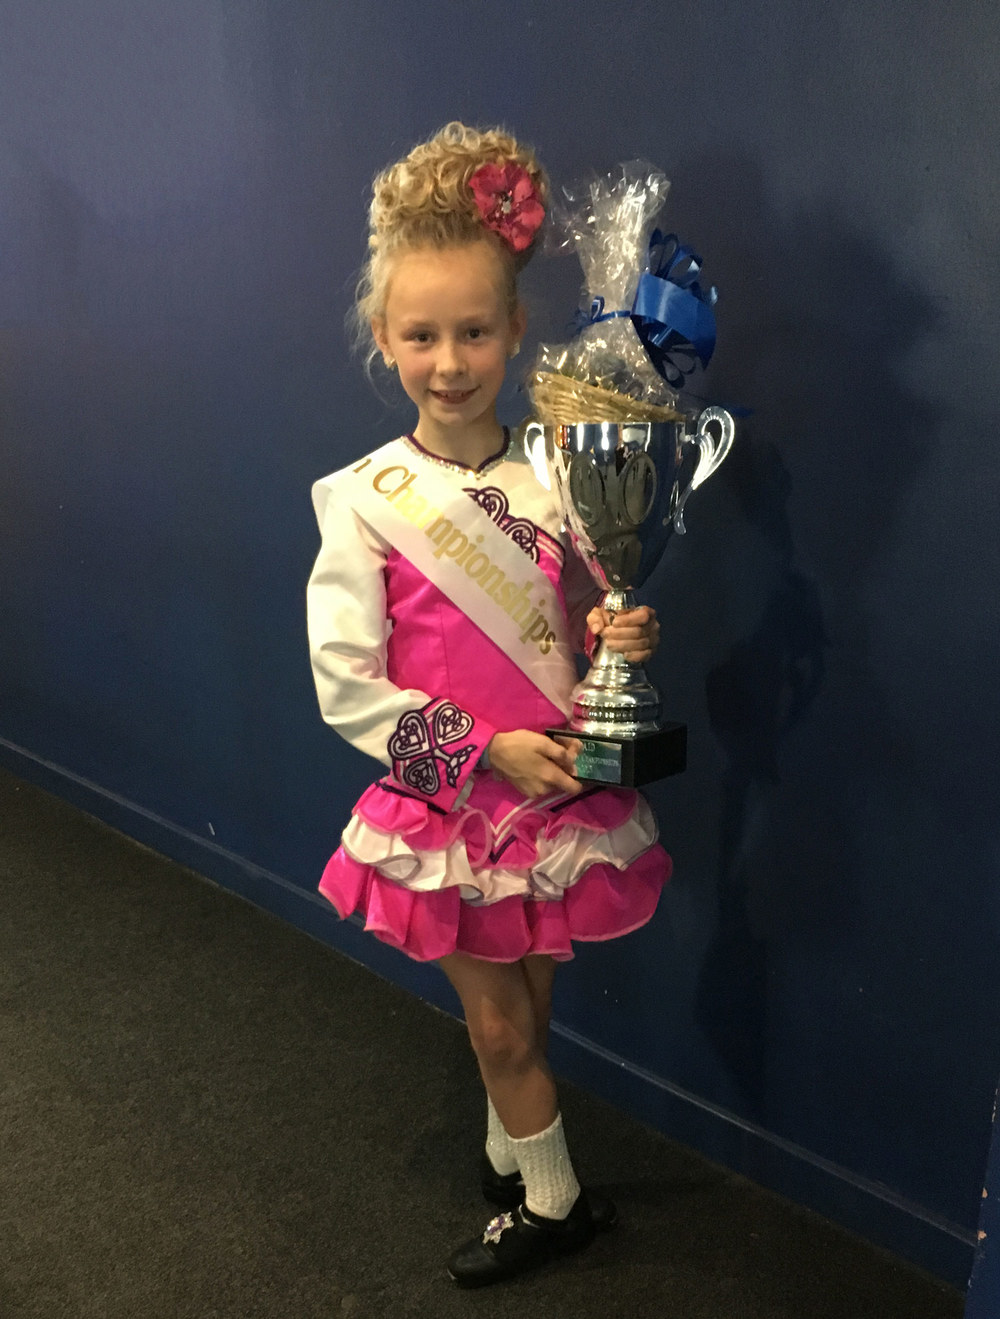 Photo: Jessica Heyburn, 11 and under European Champion 2015